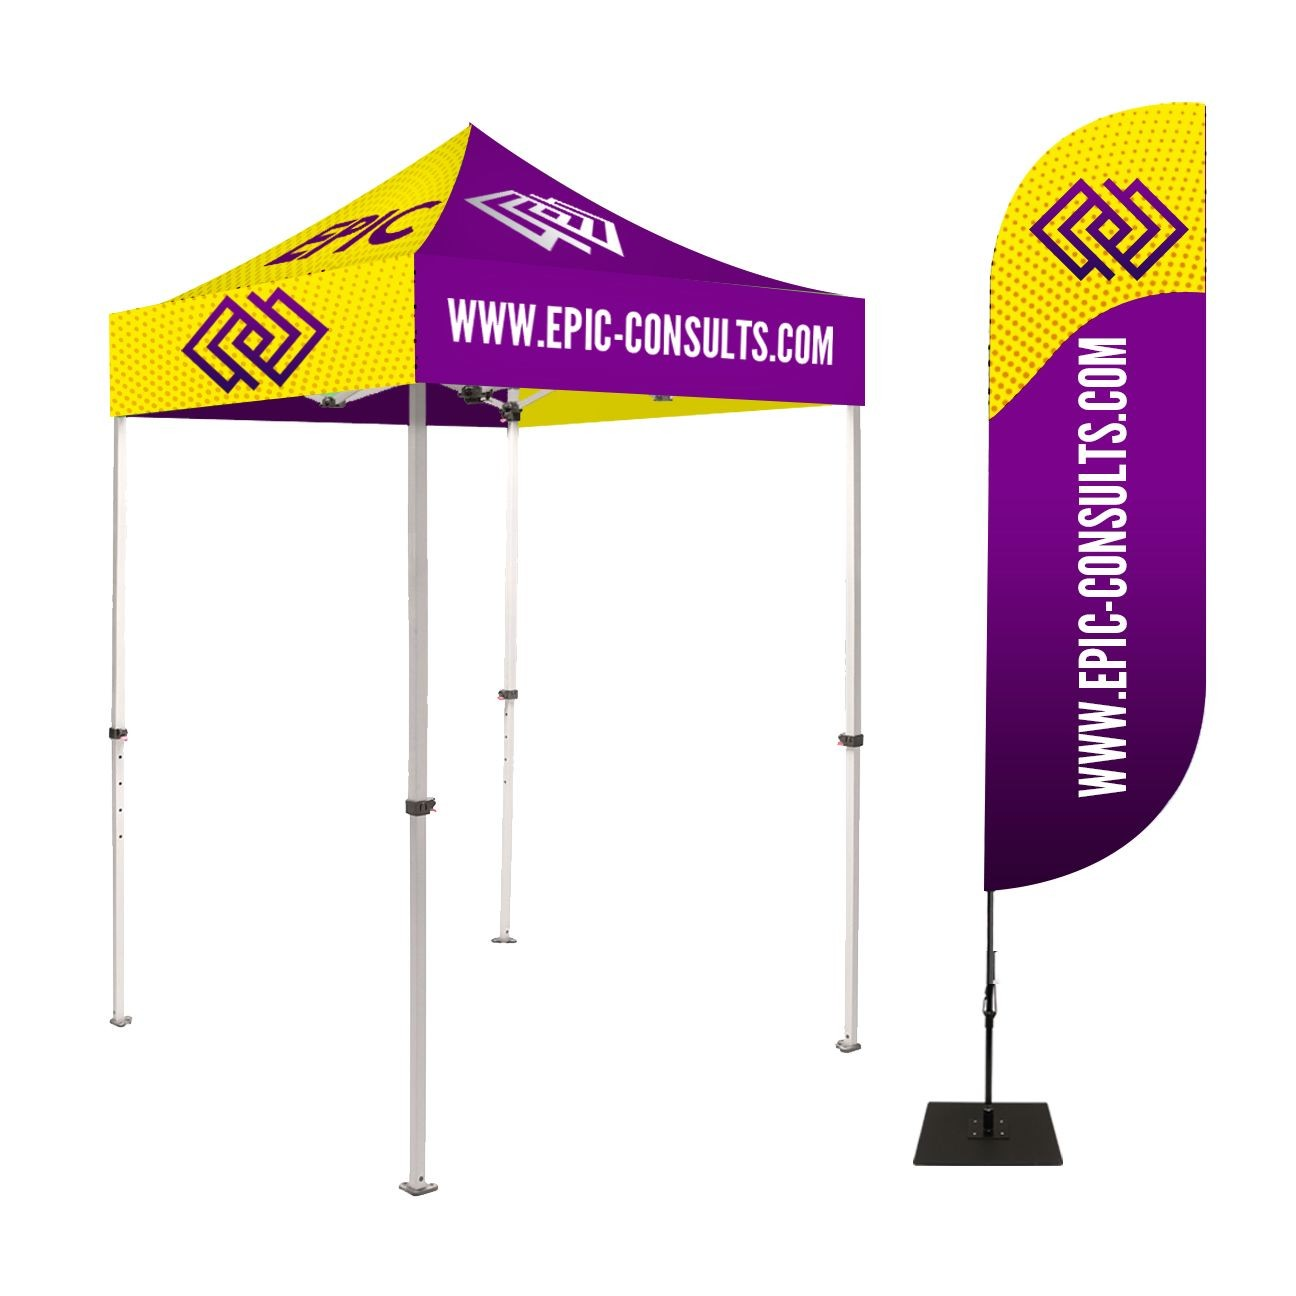 5 by 5 Foot Tall Canopy Tents with Feather Banners